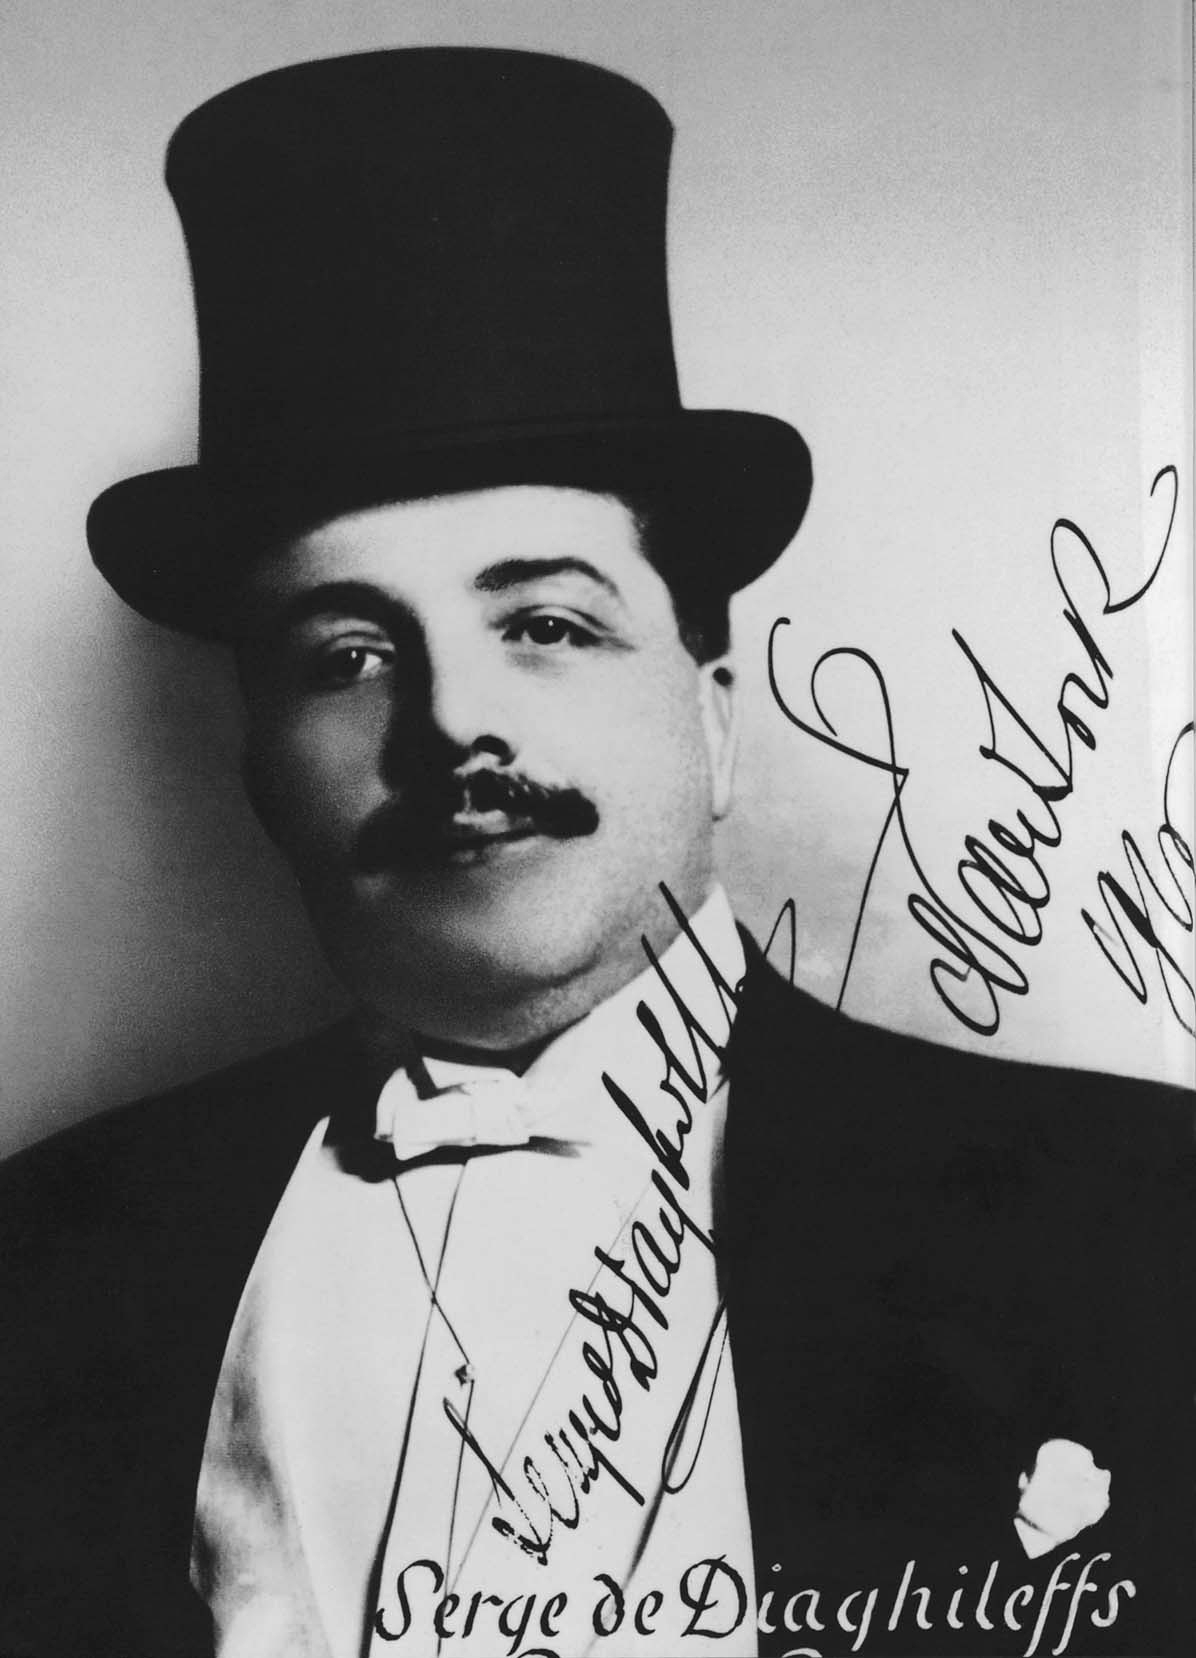 Serge Diaghilev, photograph by Jan de Sterlecki, 1916